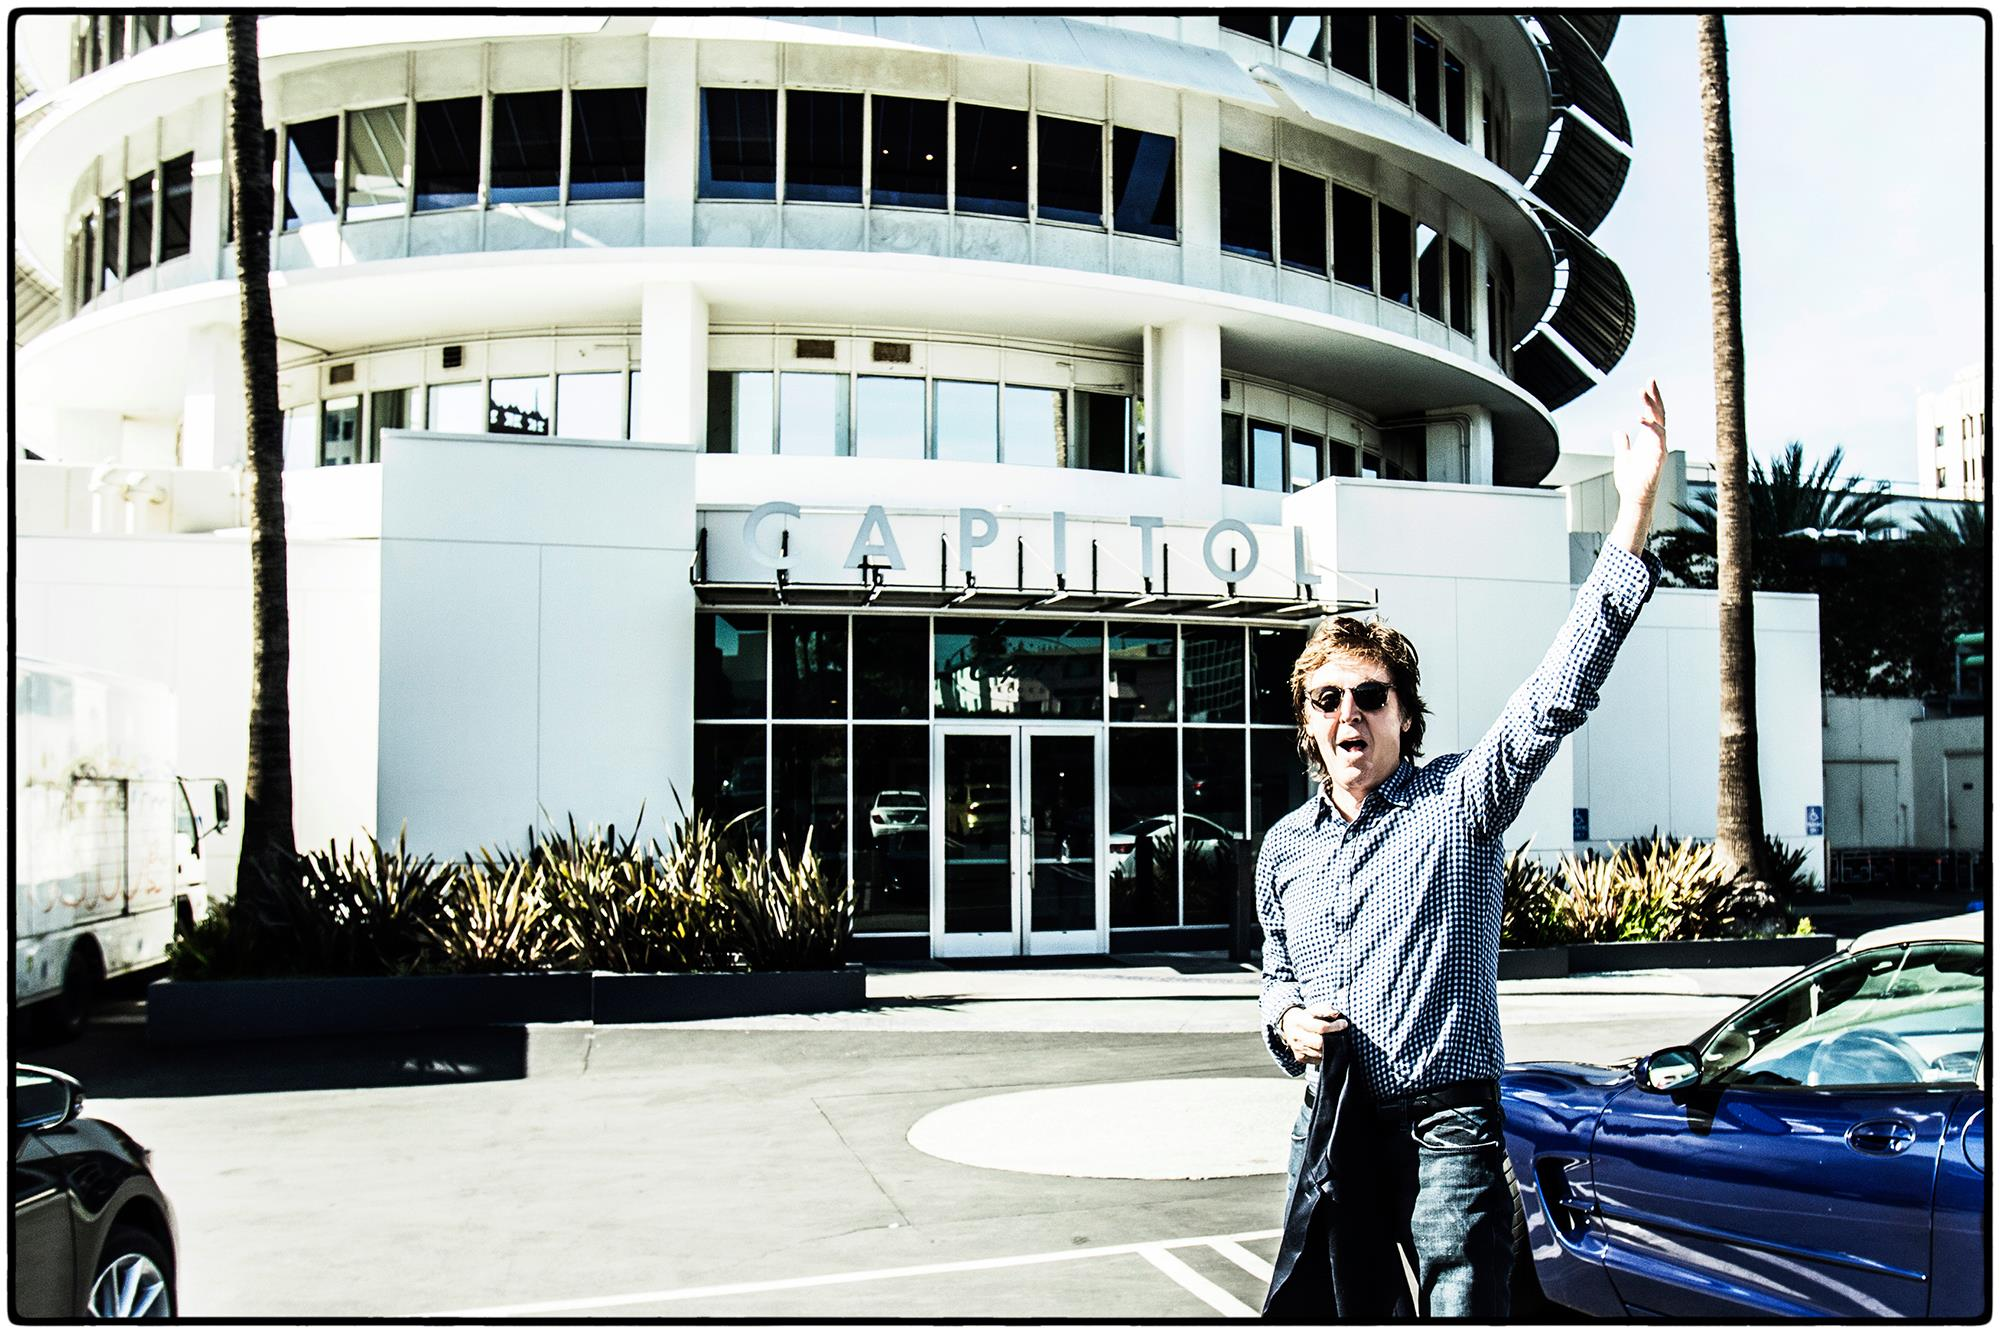 Paul McCartney at Capitol Records (via his Facebook)